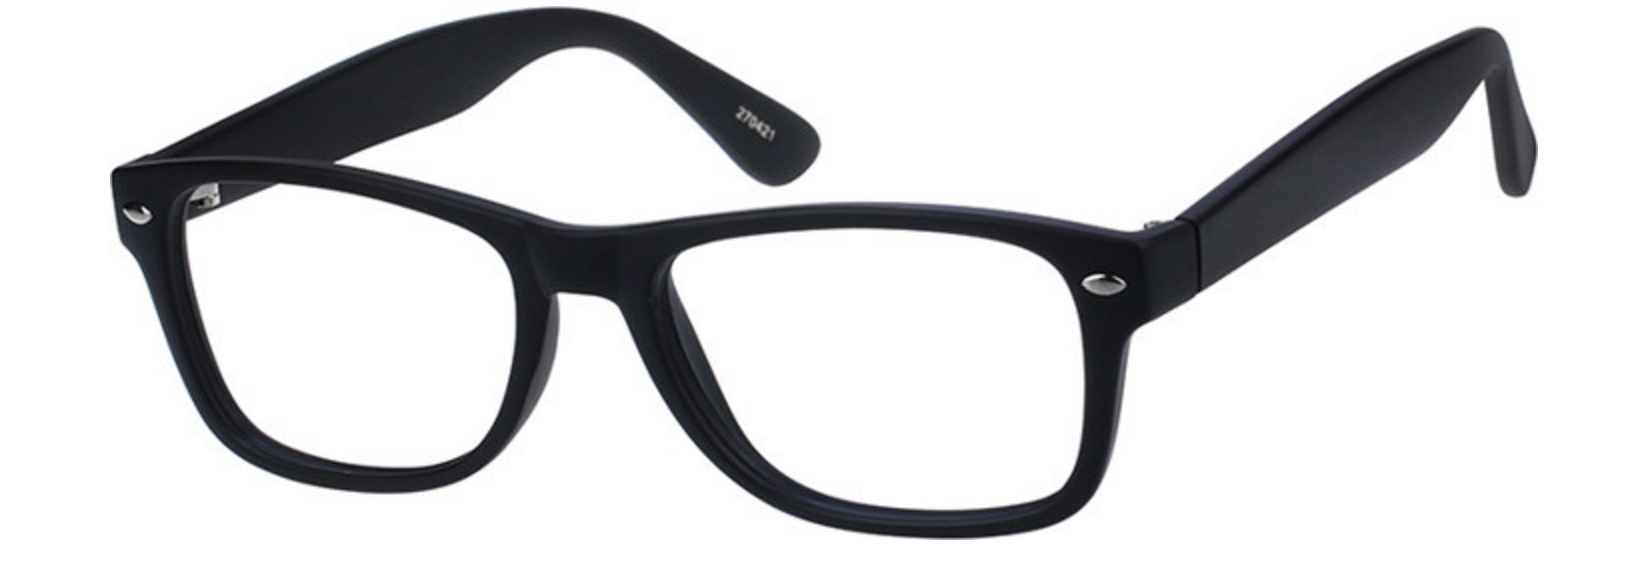 Eyeglasses from Zenni Optical